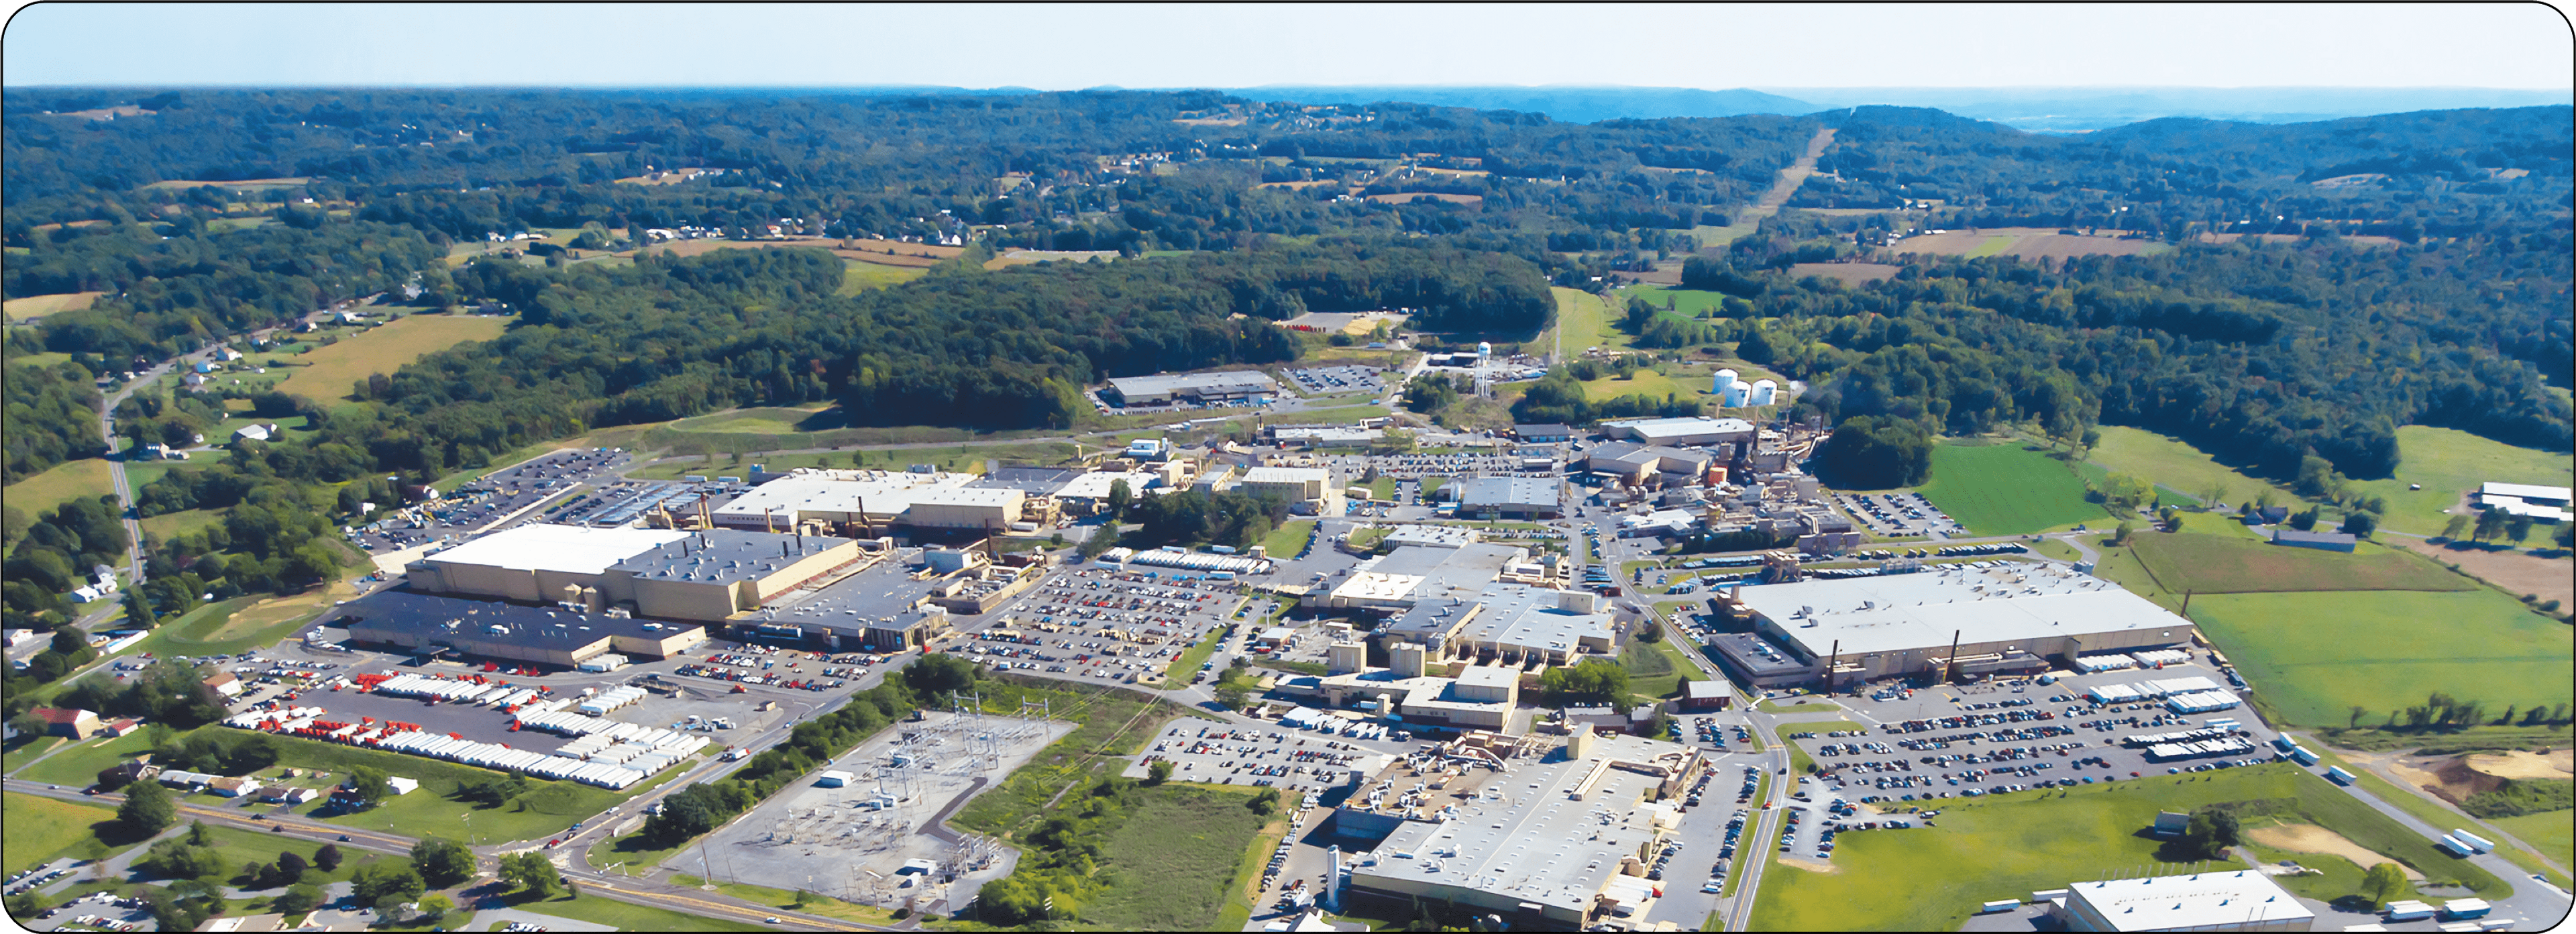 Bird's eye view picture of East Penn manufacturing facility